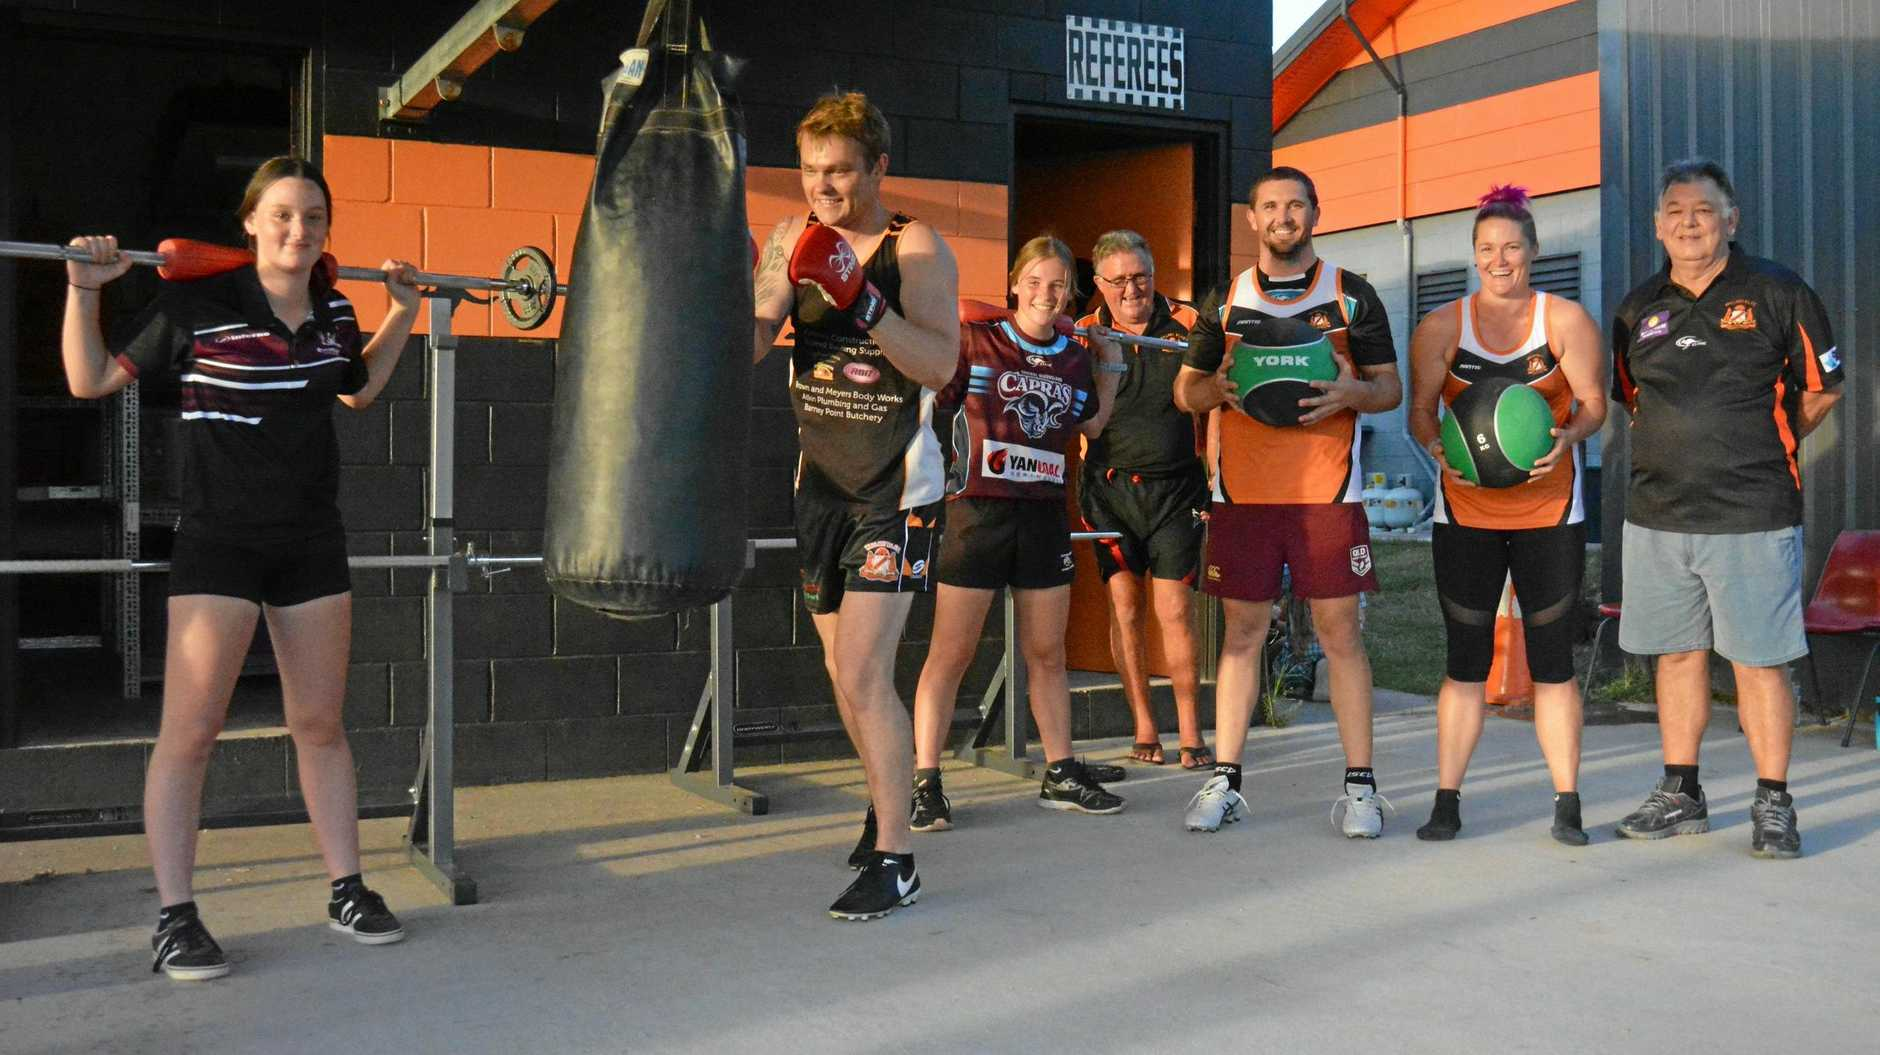 WALLABY WORKOUT: From left is Mia Pengelly, Justin Fawkes on the bag, Sophie Davidson, Terry Hamilton, Matt Baker, Chelsea Baker and Ian Retchford.